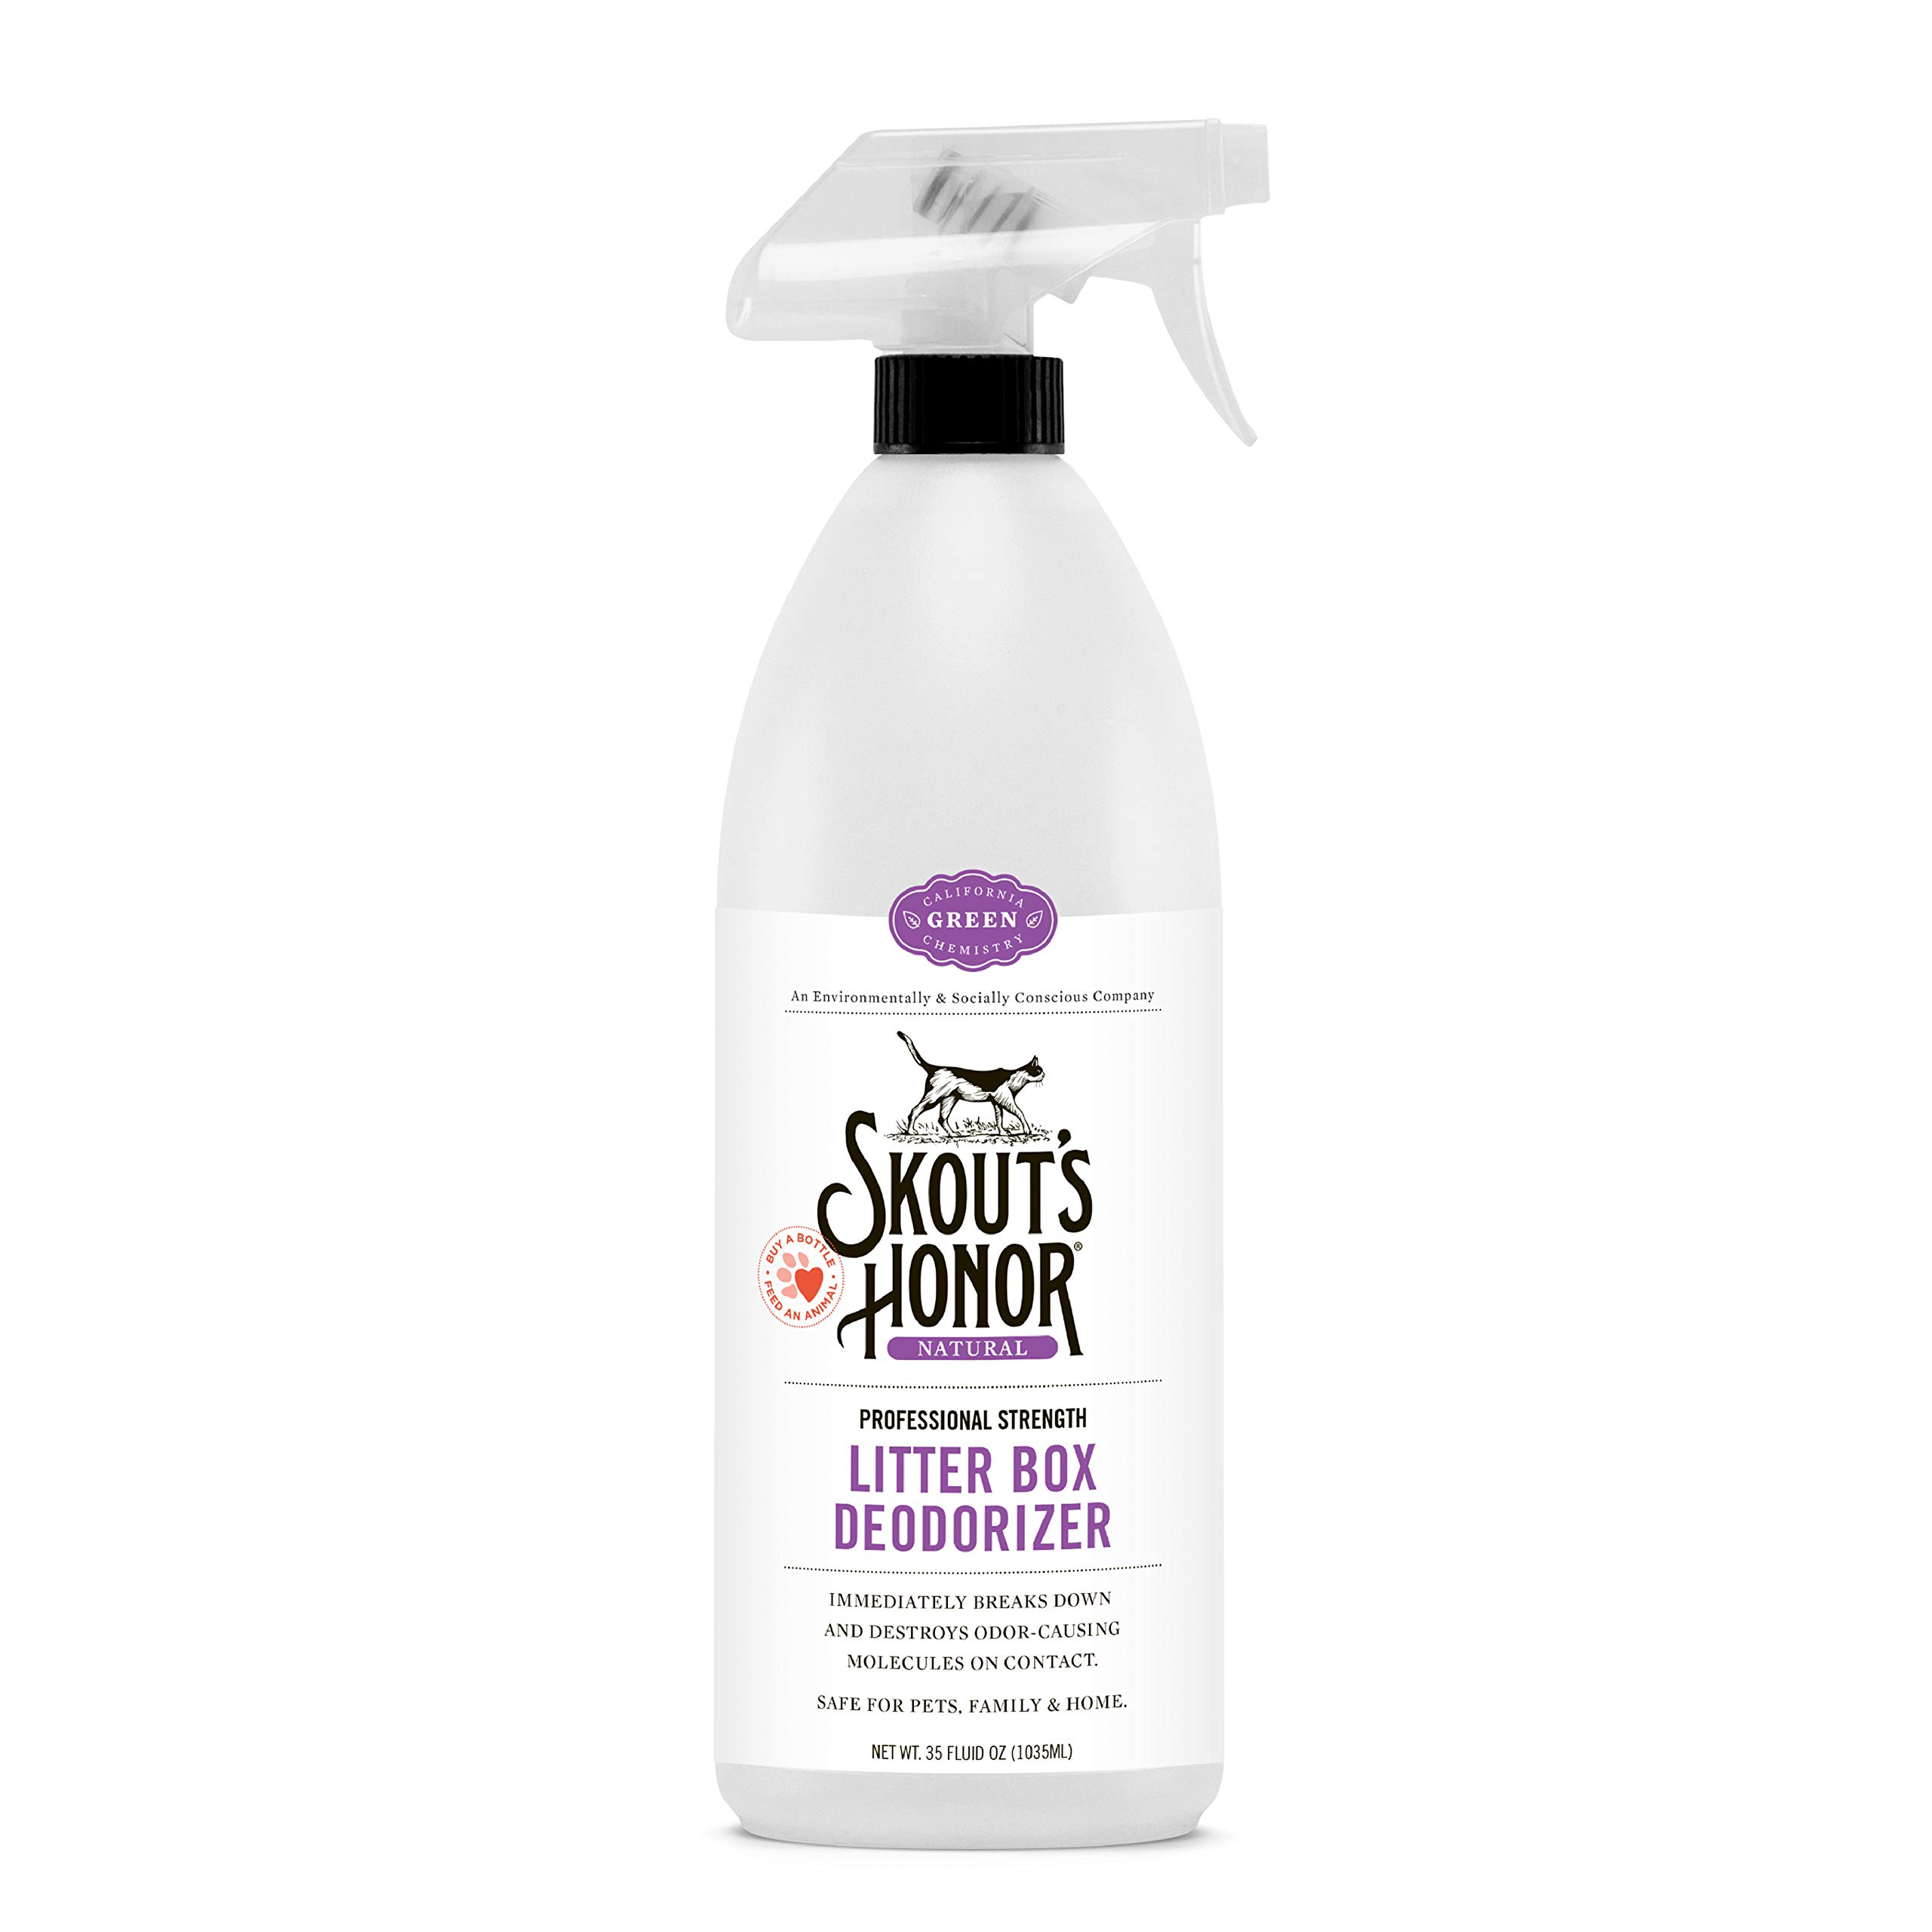 Skout's Honor Professional Strength, All-Natural Cat Litter Box Deodorizer - Non-Toxic, Biodegradable, and Eco-Friendly - Destroys Foul Odor Molecules On Contact - 32-Ounce Spray Bottle by SKOUT'S HONOR (Image #2)